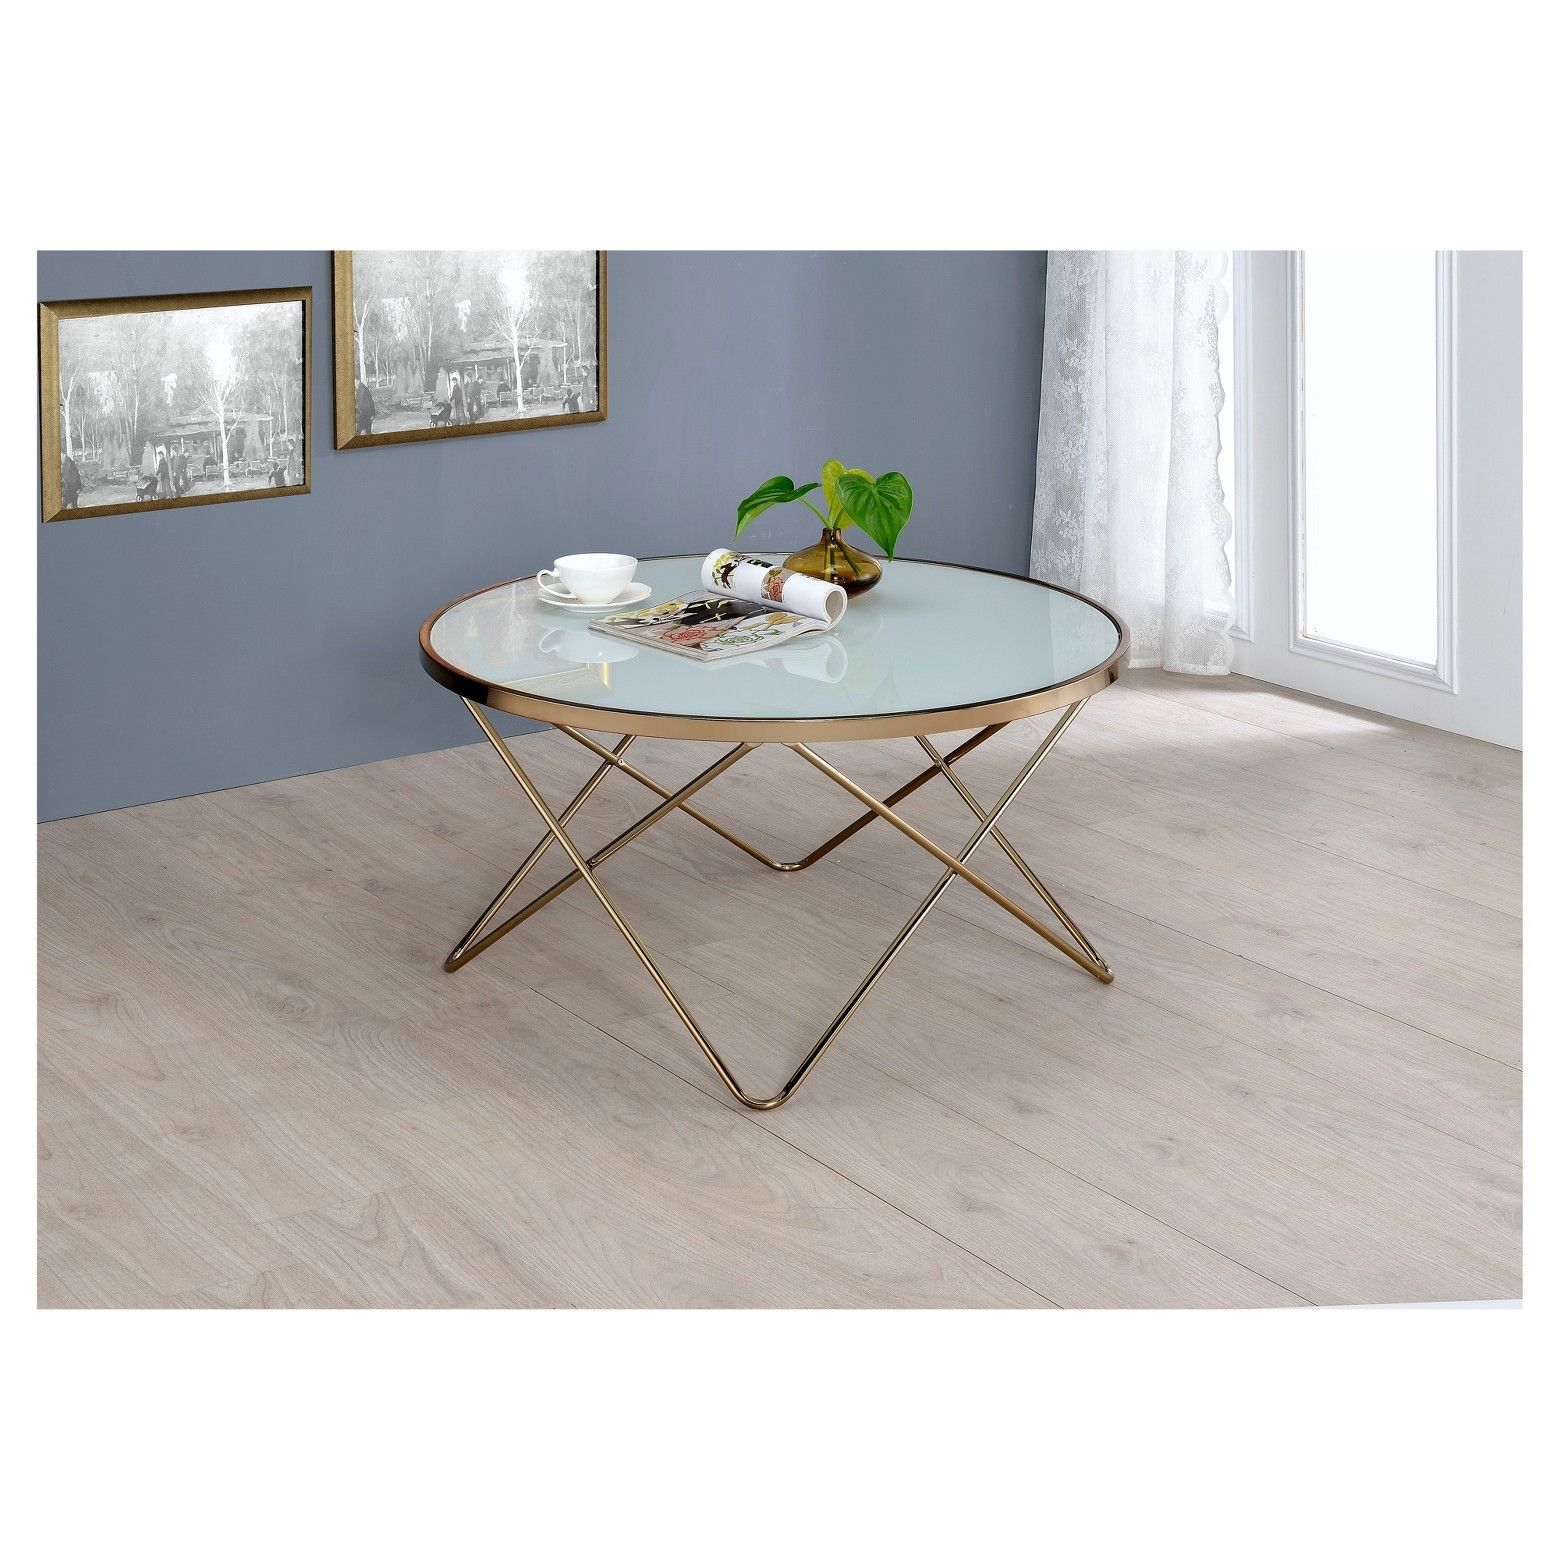 ACME Furniture Coffee Table Frosted Champagne